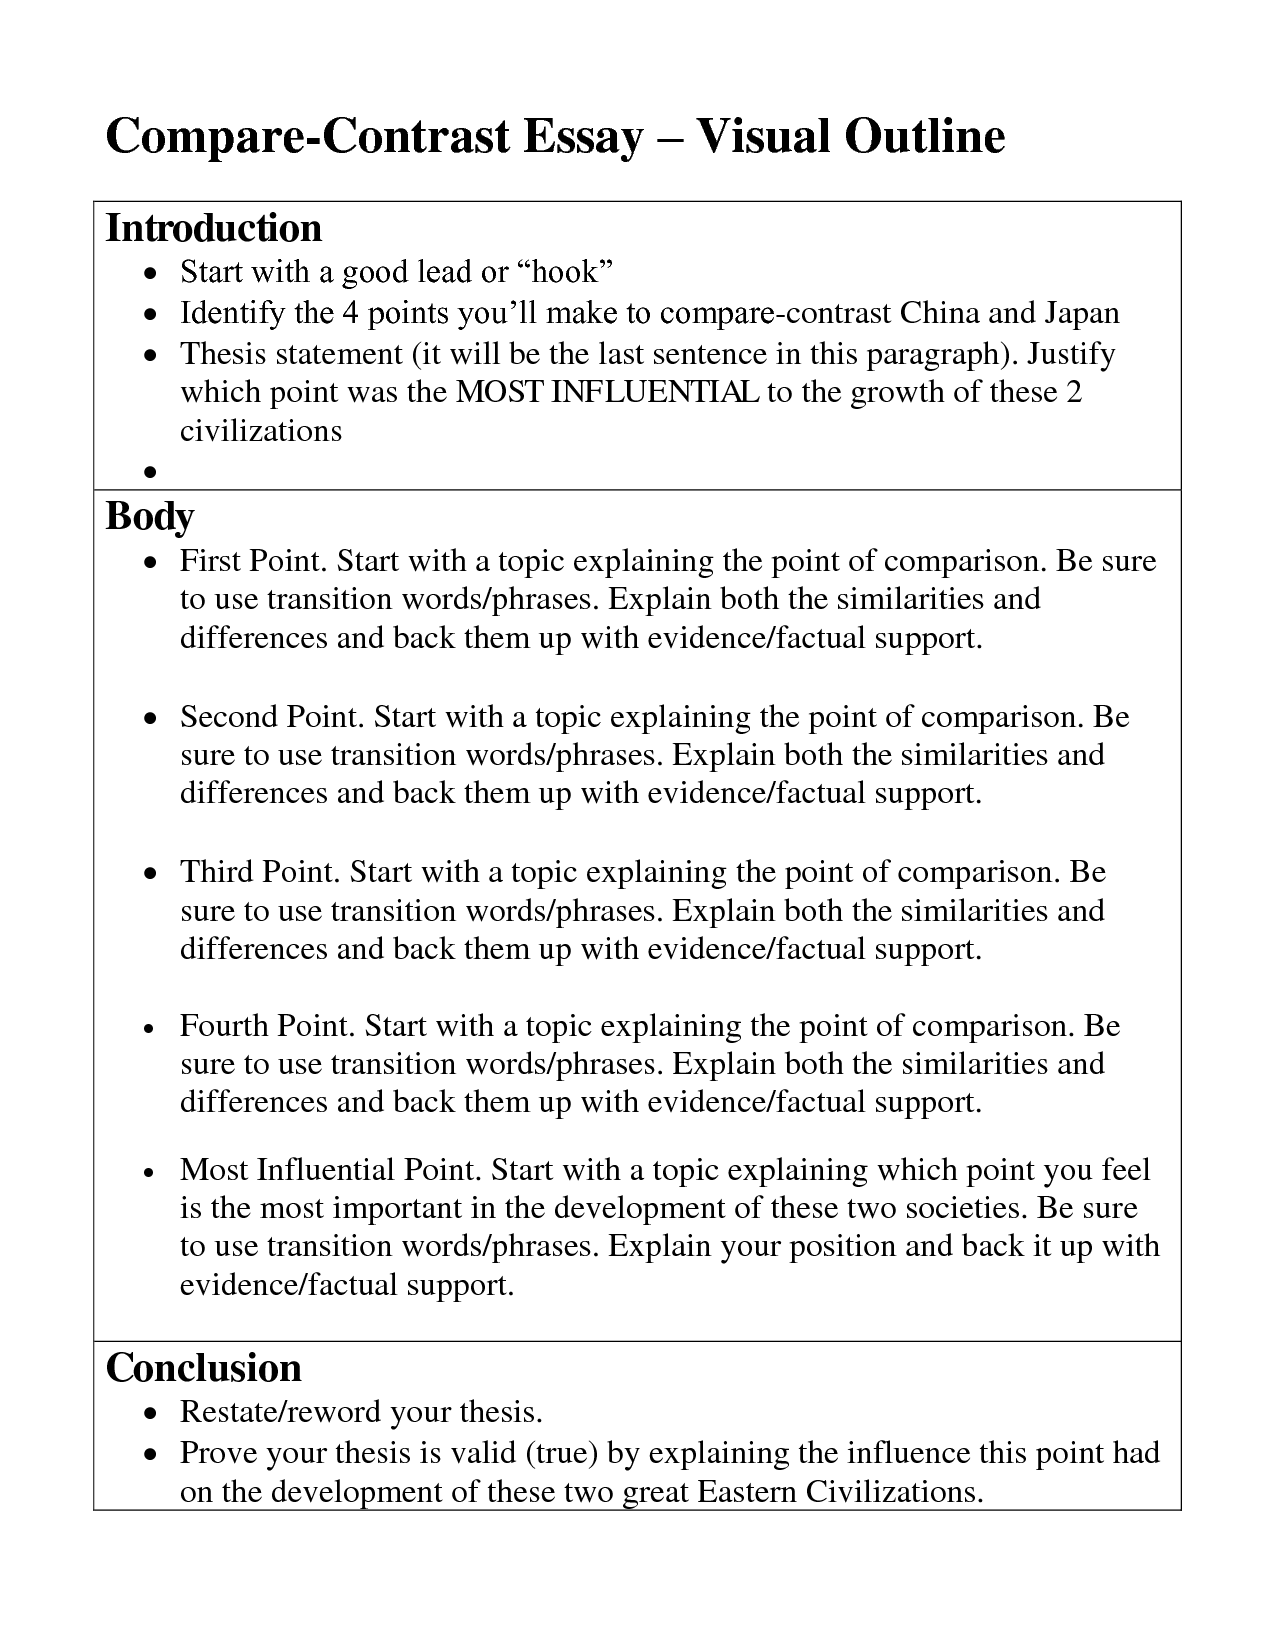 017 Compare And Contrast Essay Frightening Topics Outline Doc Sample 4th Grade Full